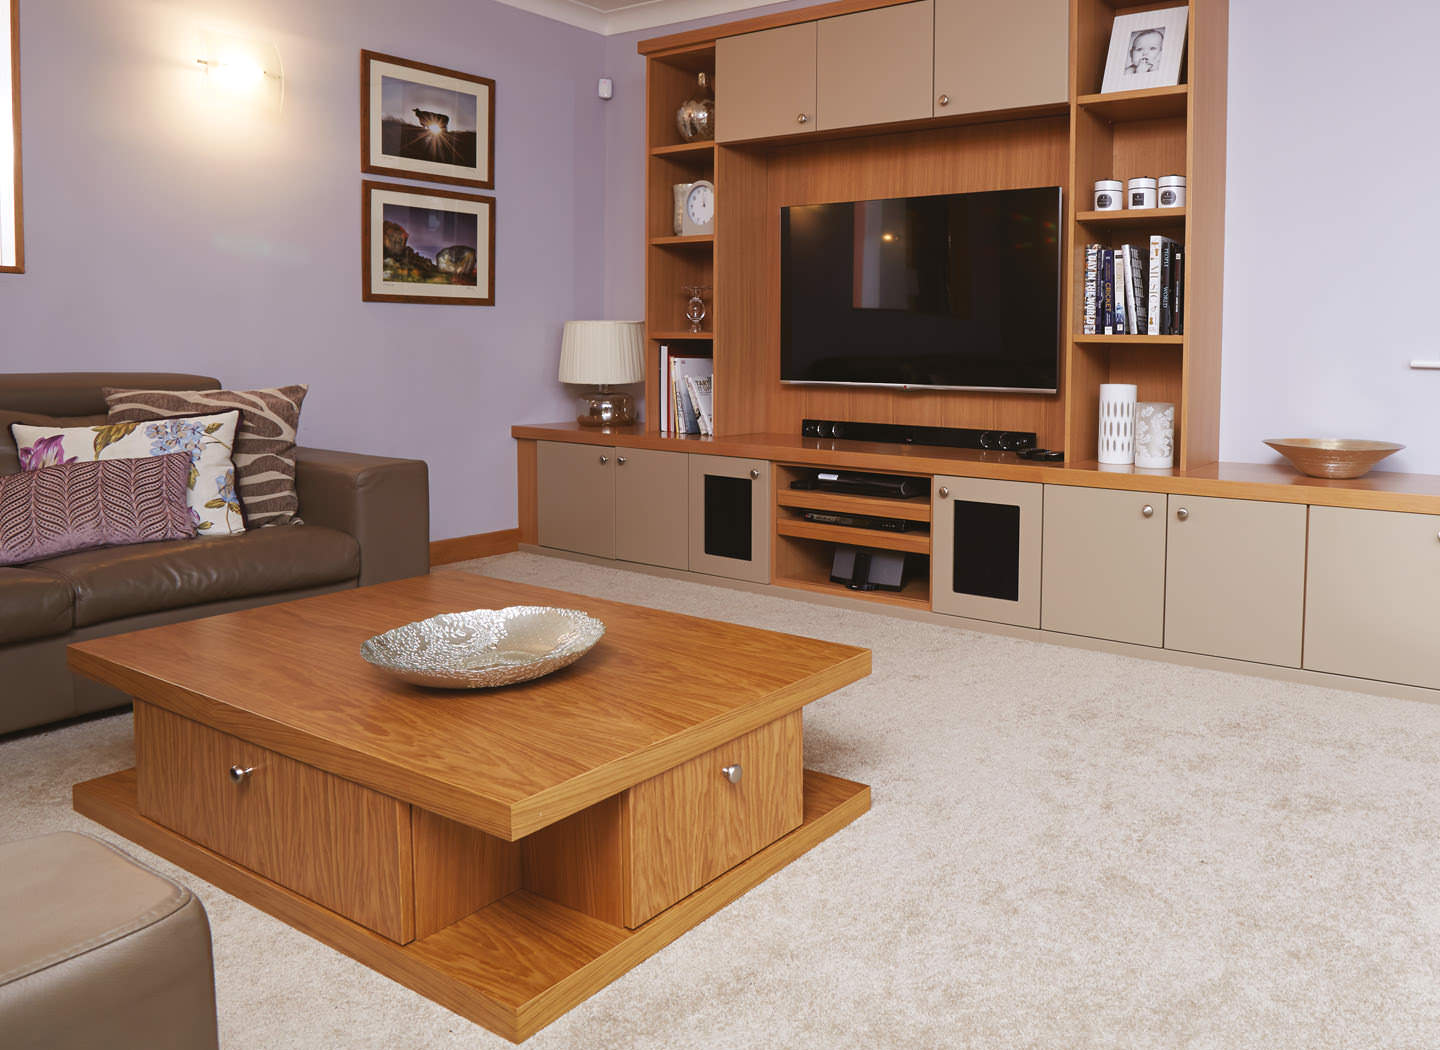 Case study showing coffee table and cabinets in lounge